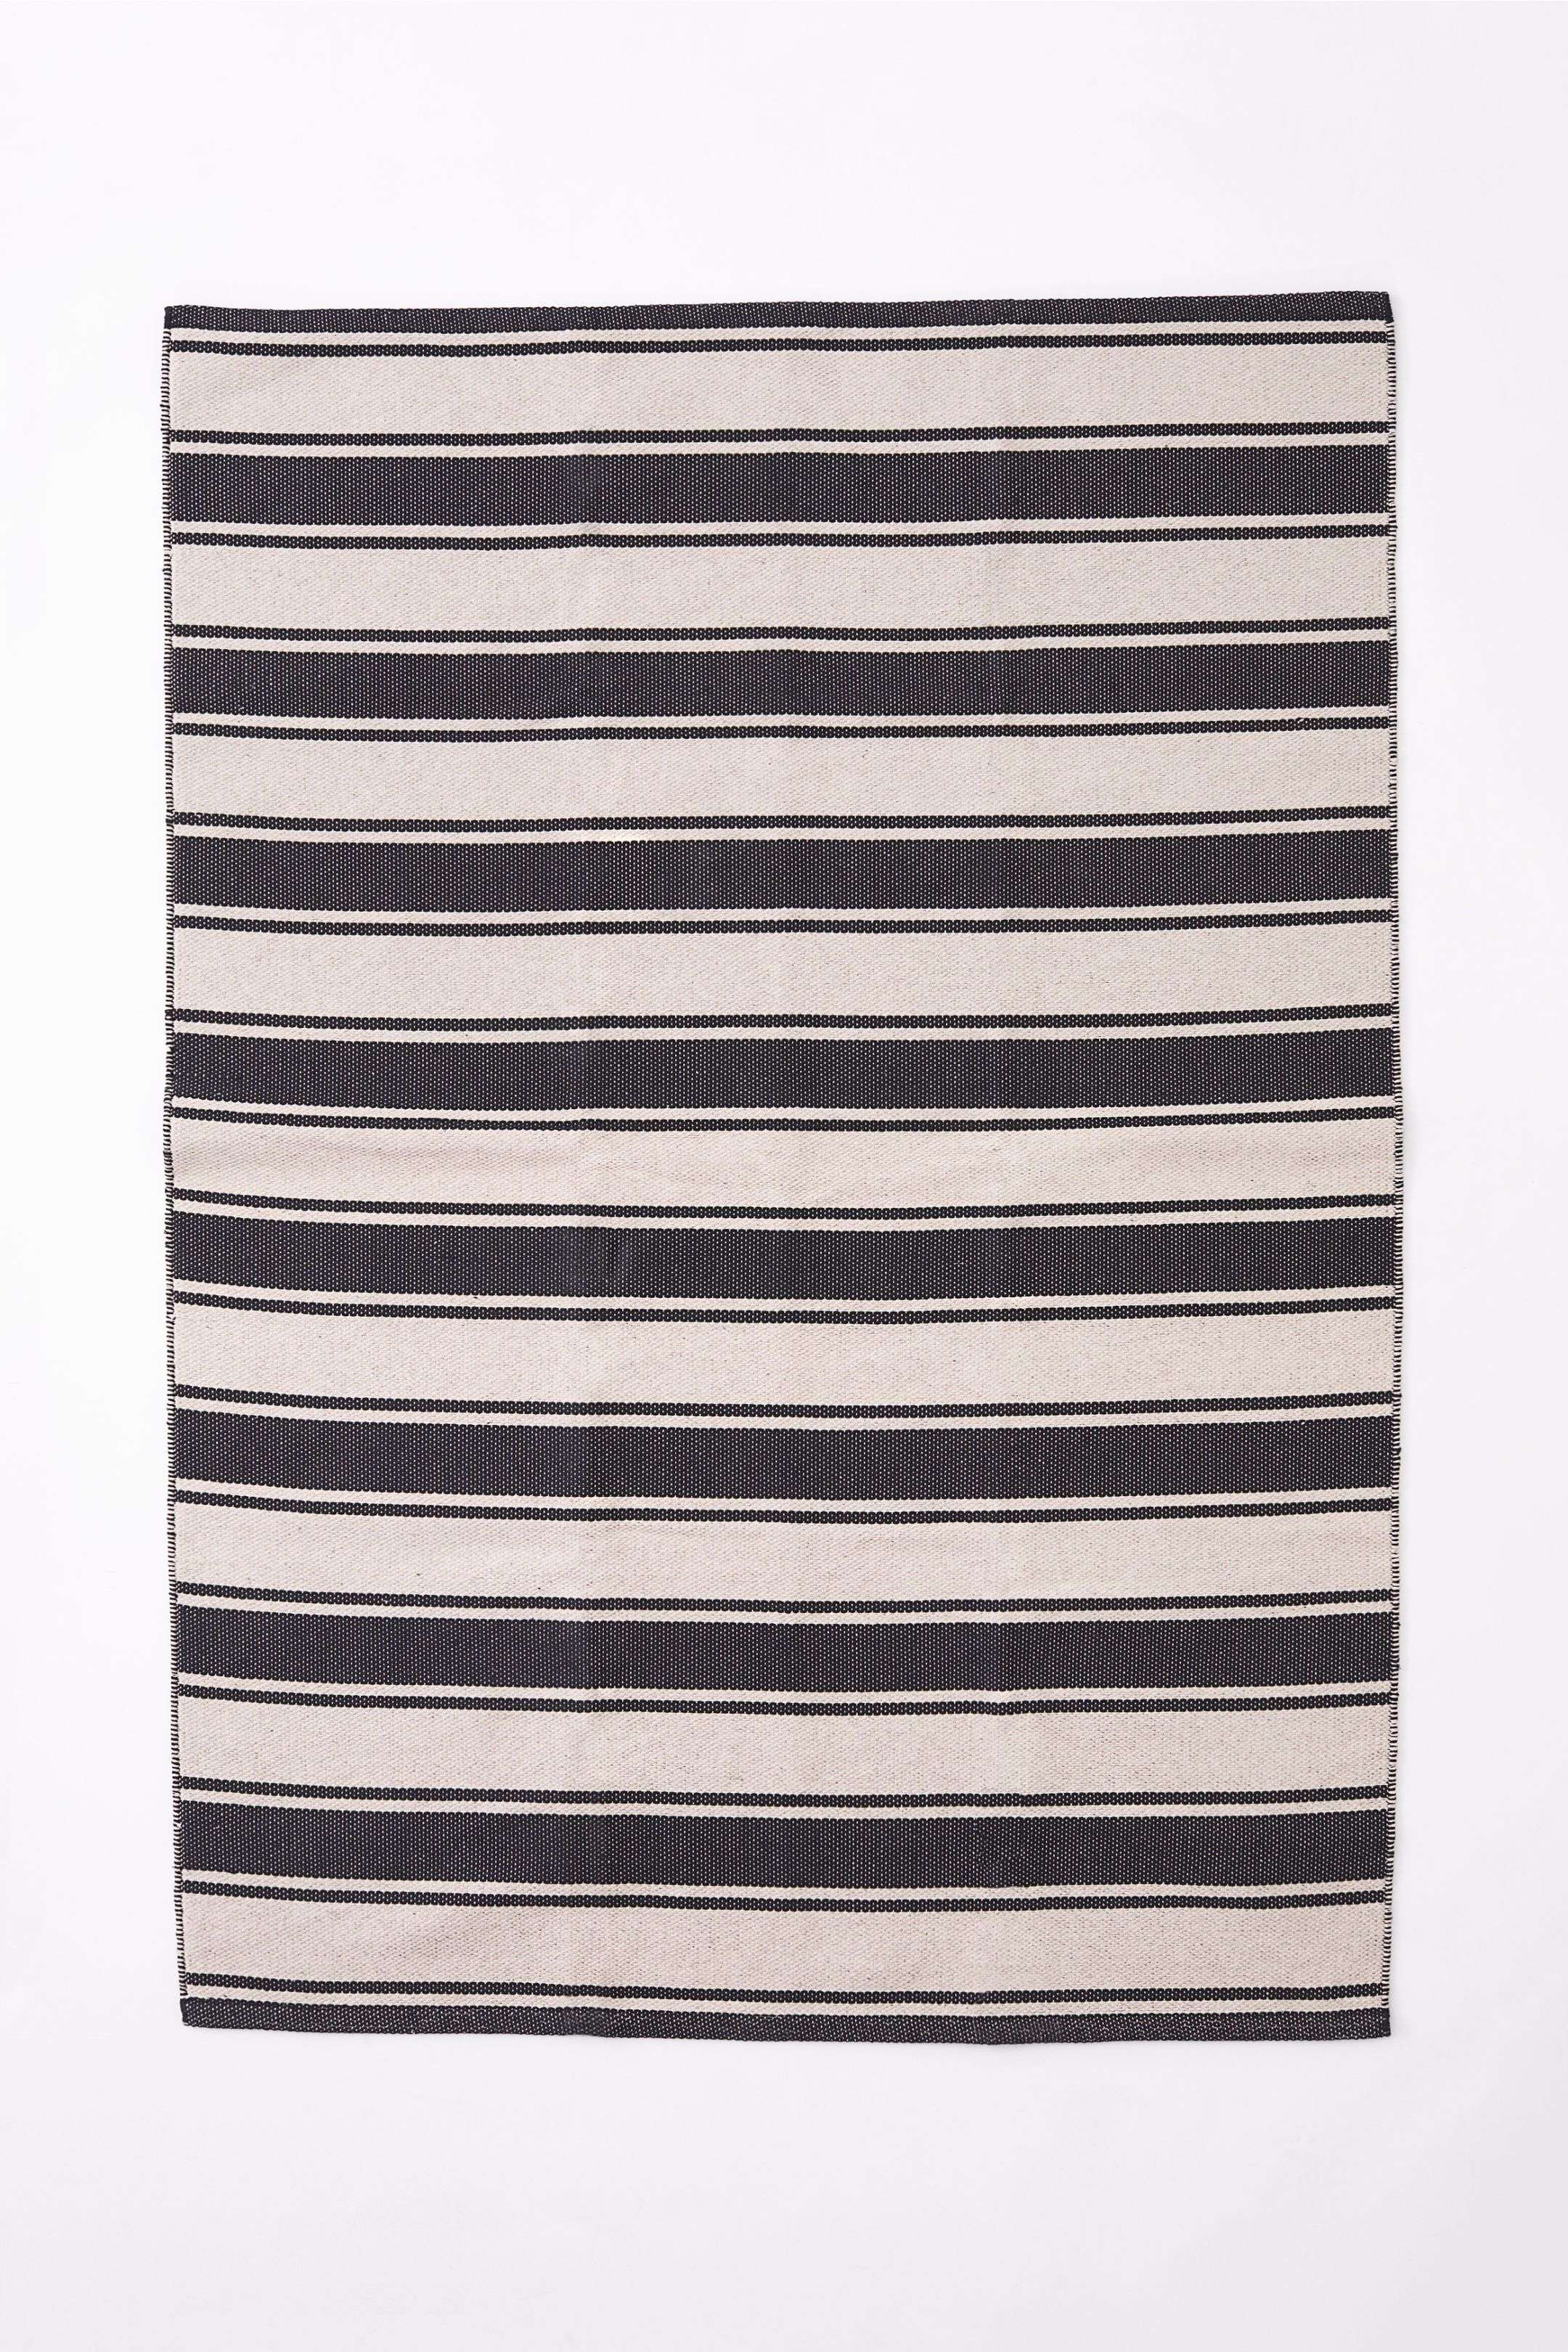 H&M Home Striped Cotton Rug